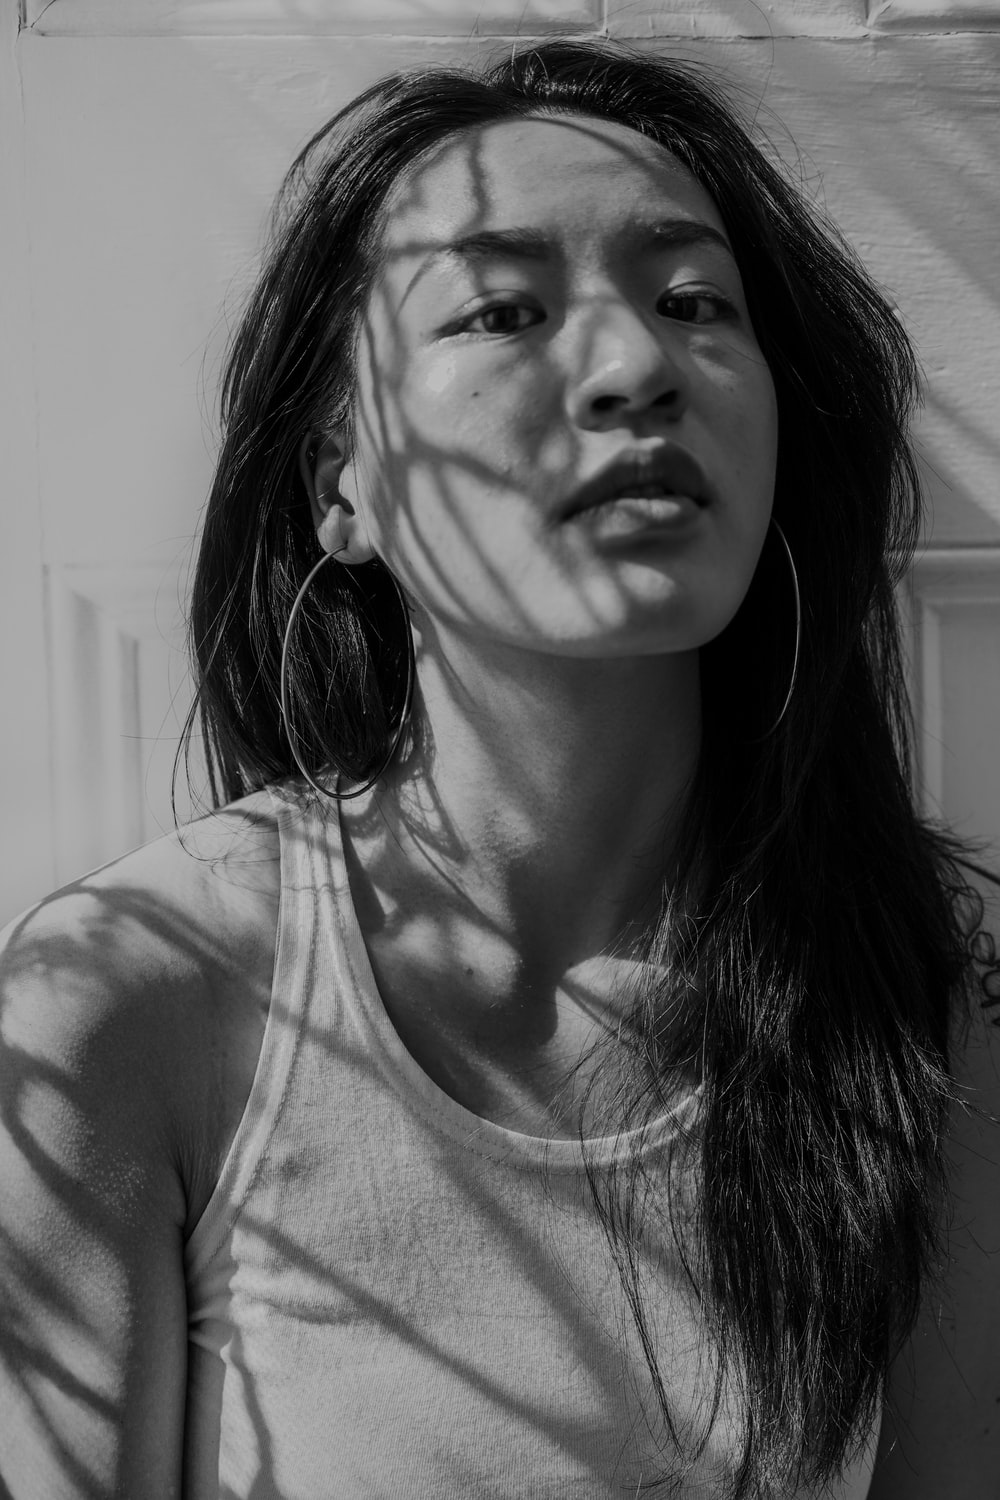 woman in tank top in grayscale photography